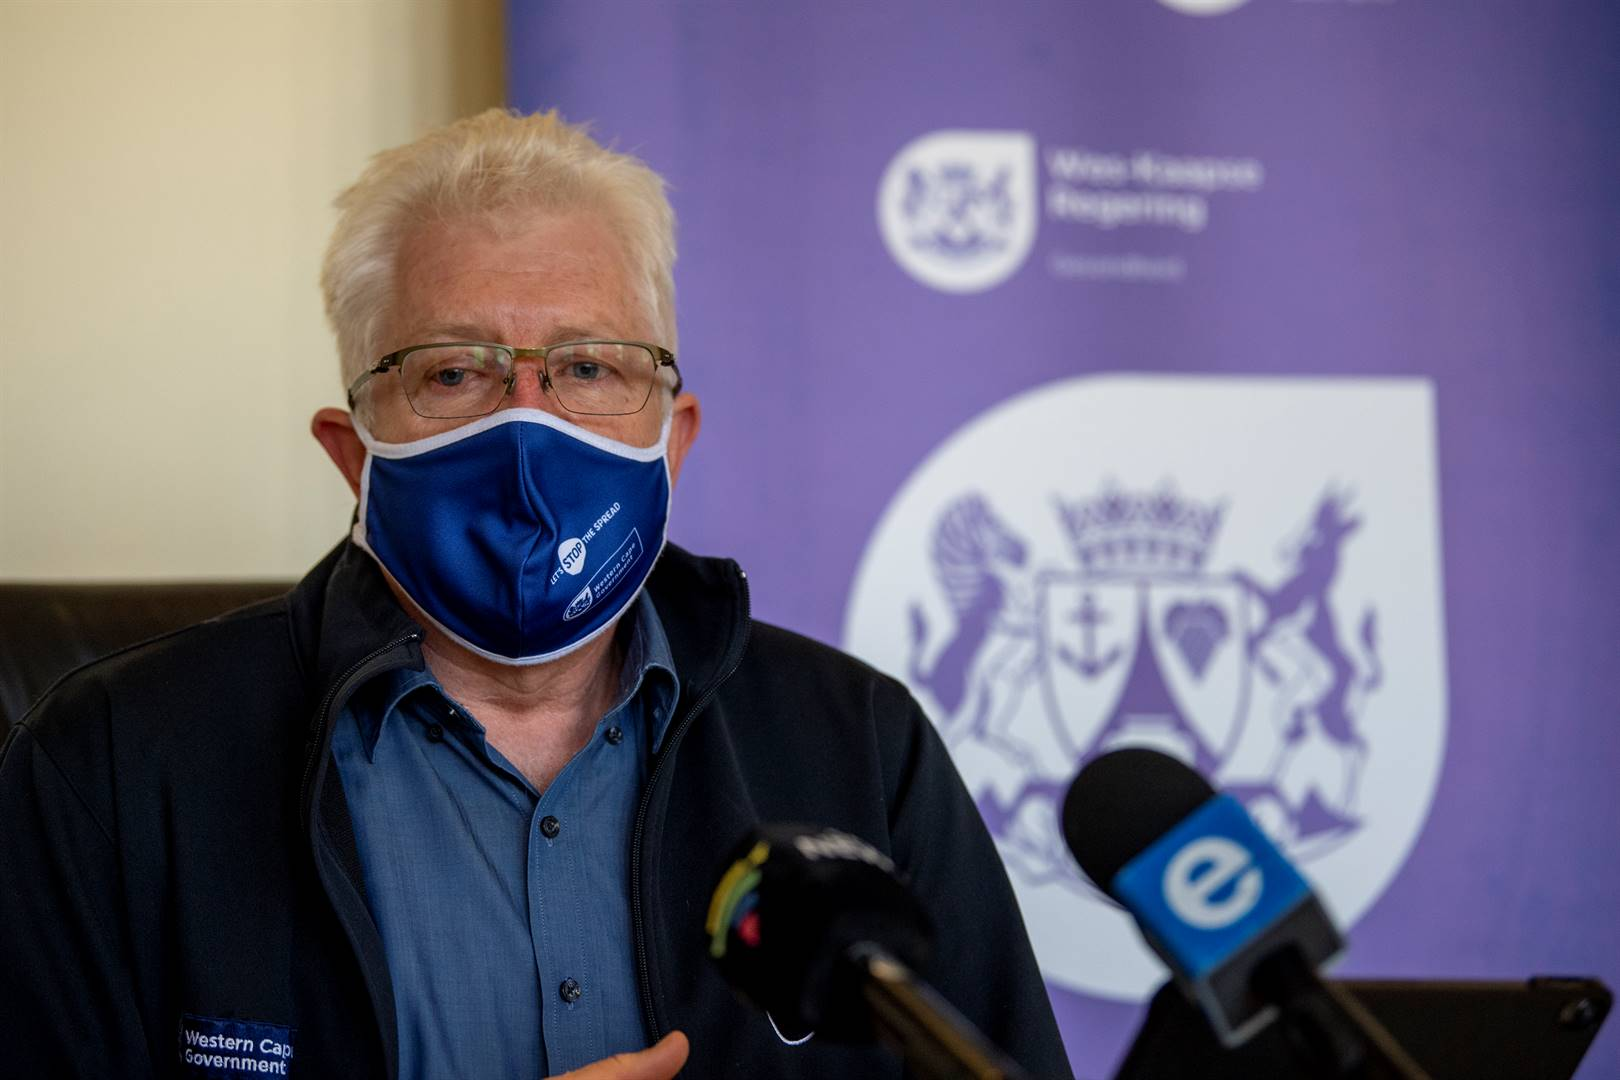 Covid-19 and Black Friday: Alan Winde pleads for caution to avoid 'super-spreader' events - News24